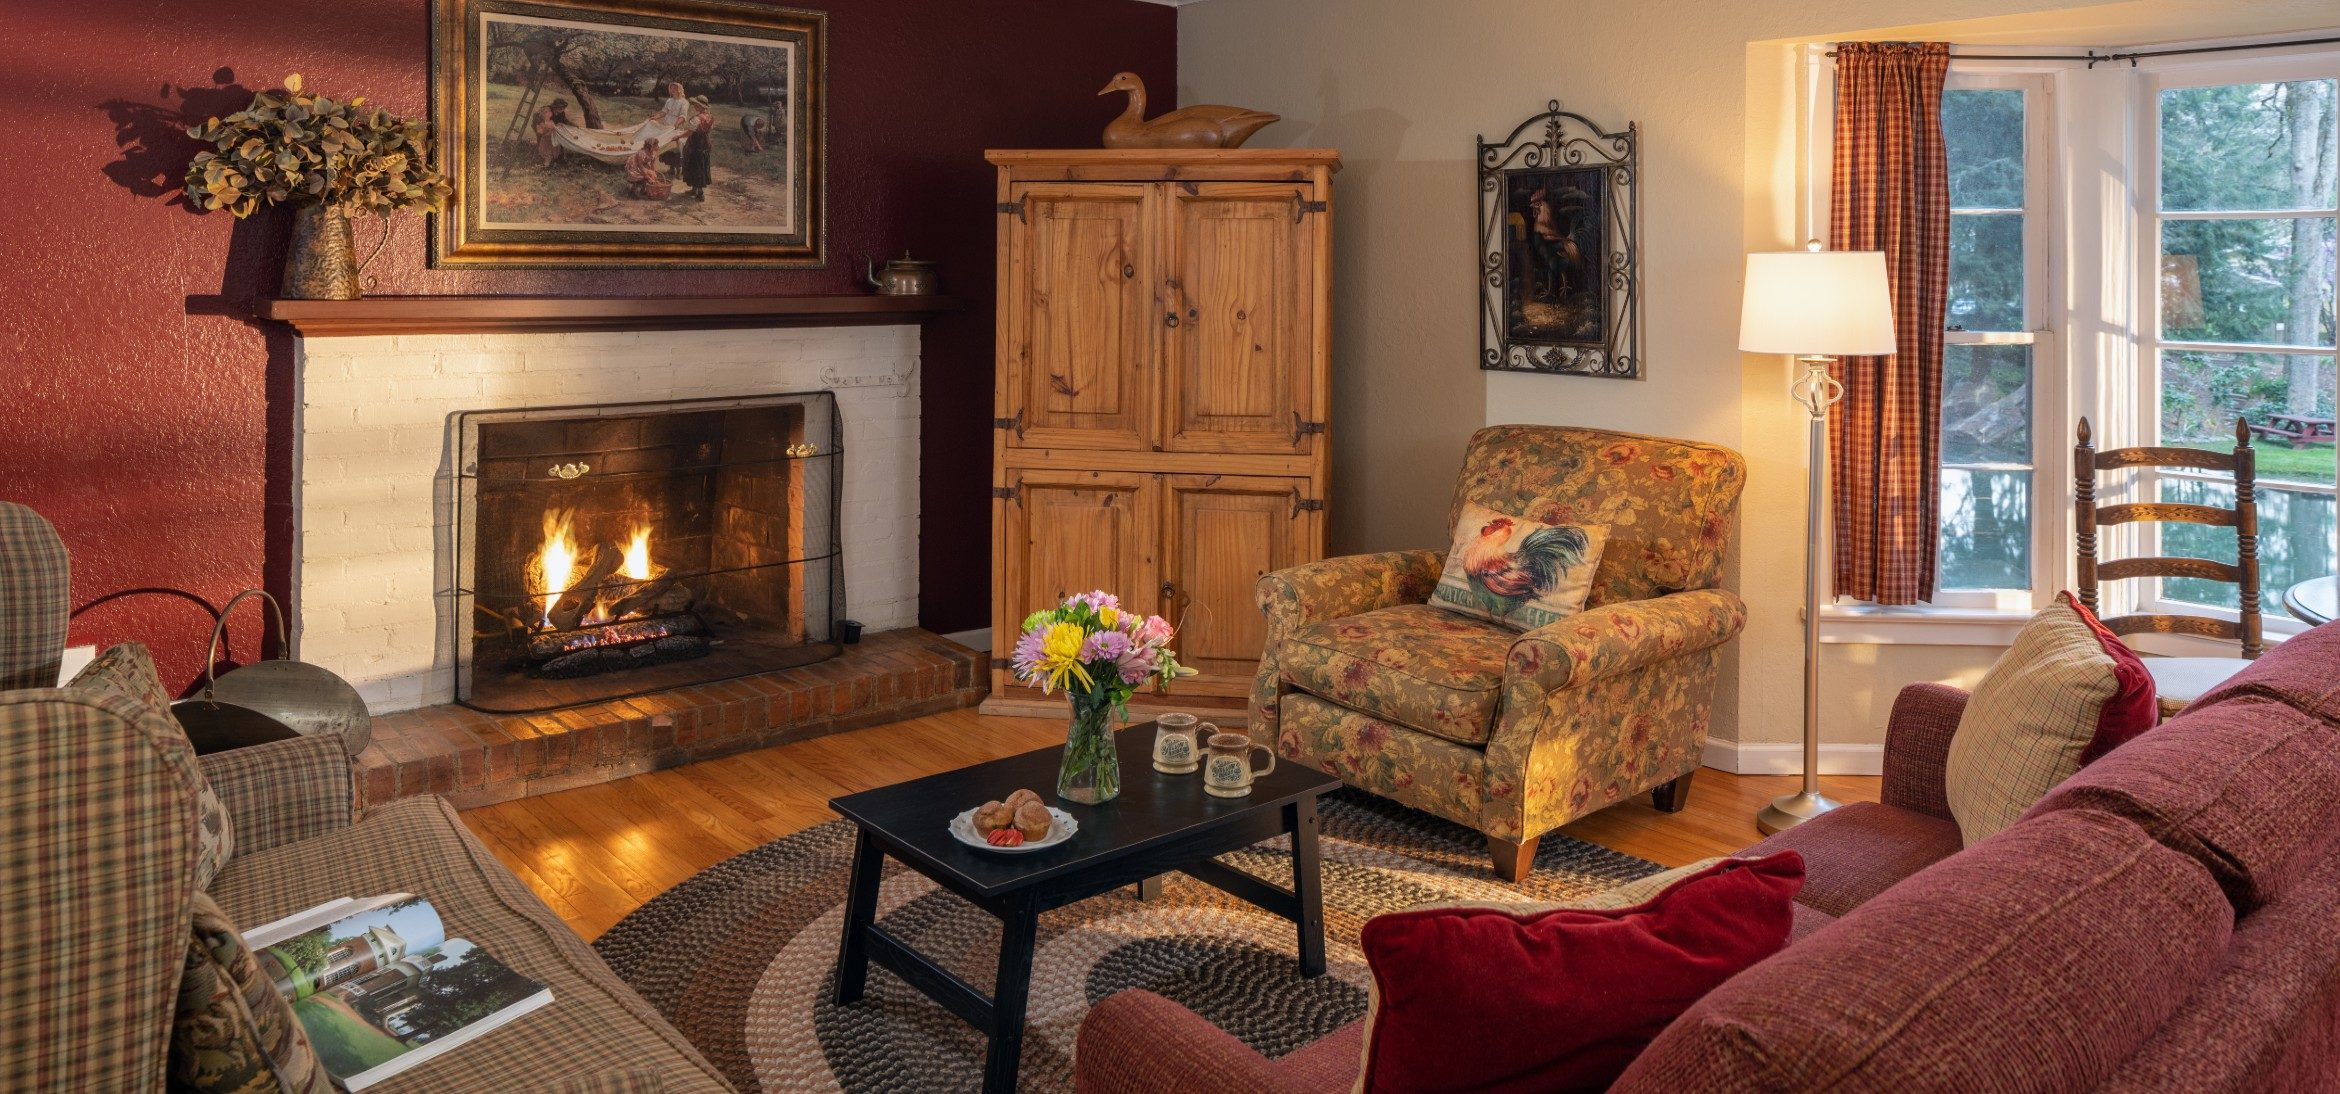 Sunrise Suite sitting area with fireplace